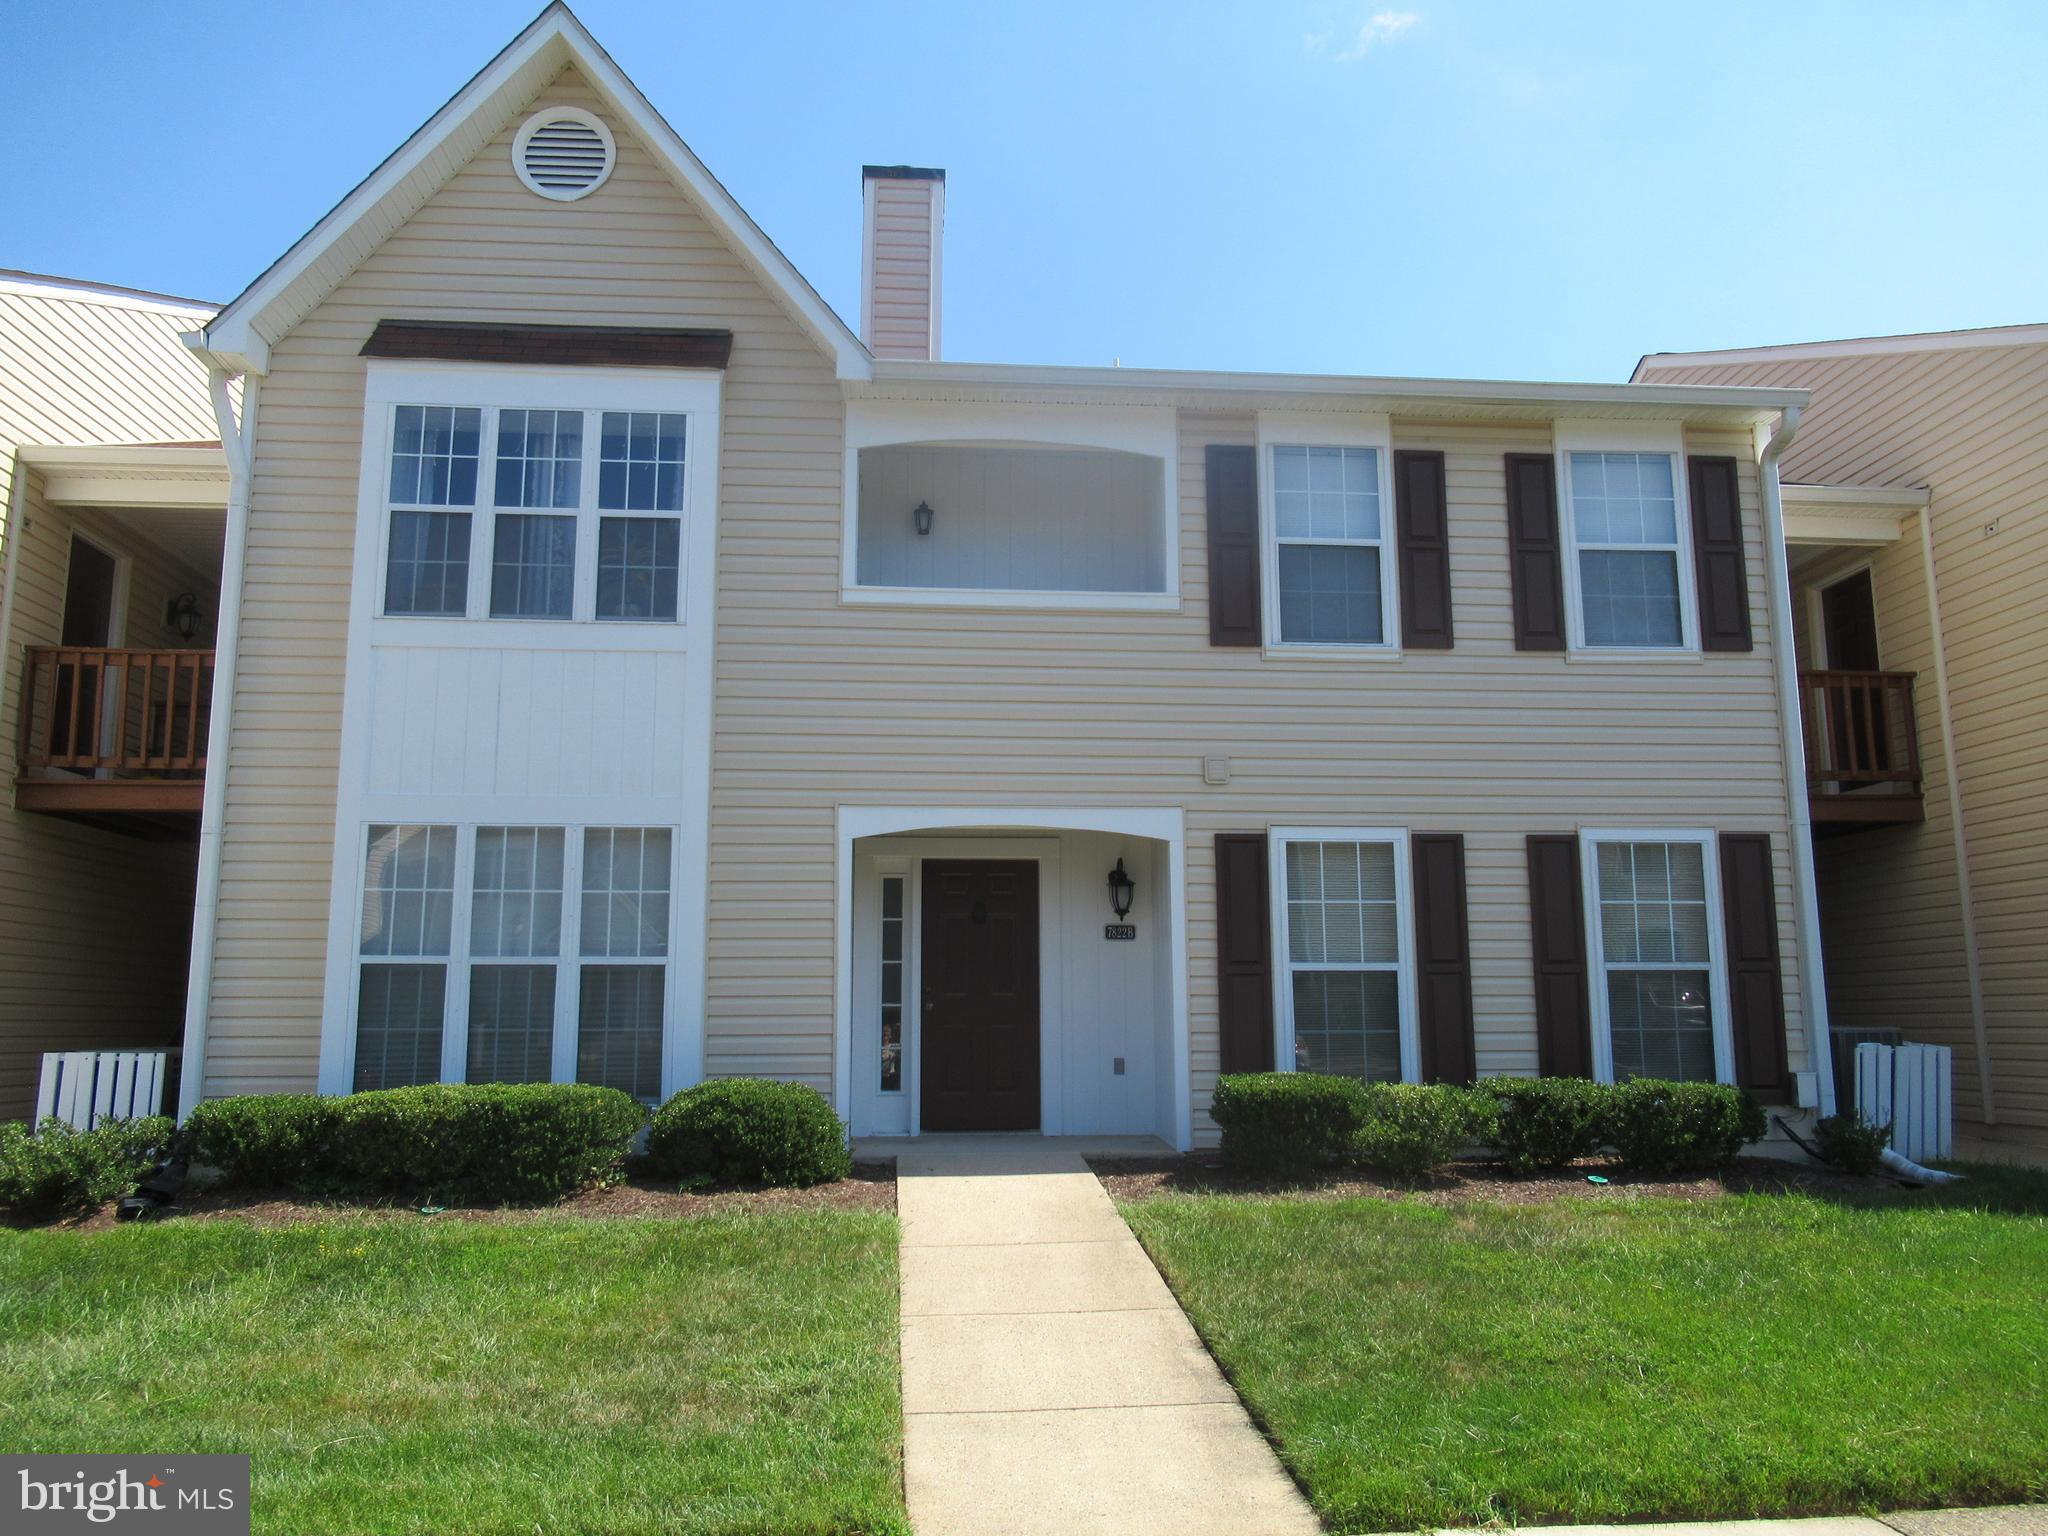 LOVELY HOME IN GREAT LOCATION- SHOWS WELL- HANDICAP ACCESSIBLE-WIDE DOOR AND  HALLWAY OPENINGS THROUGHOUT, ALL ON THE MAIN FRONT LEVEL, NO STAIRS AND EASY ACCESS TO RESERVED PARKING SPACE.  EXTRA LARGE BATHROOM, FULL SIZE WASHER AND DRYER, SPACIOUS WALK IN  STORAGE CLOSET IN BEDROOM.  MOST CONVENIENT TO 395/495 BELTWAY, FAIRFAX COUNTY PARKWAY, FORT BELVOIR, PUBLIC TRANSPORTATION, METRO AND SHOPPING.  PARKING SPACE # 76 CONVEYS, EXTRA UNASSIGNED PARKING SPACES THROUGHOUT THE COMMUNITY.  VACANT-SHOW AND SELL